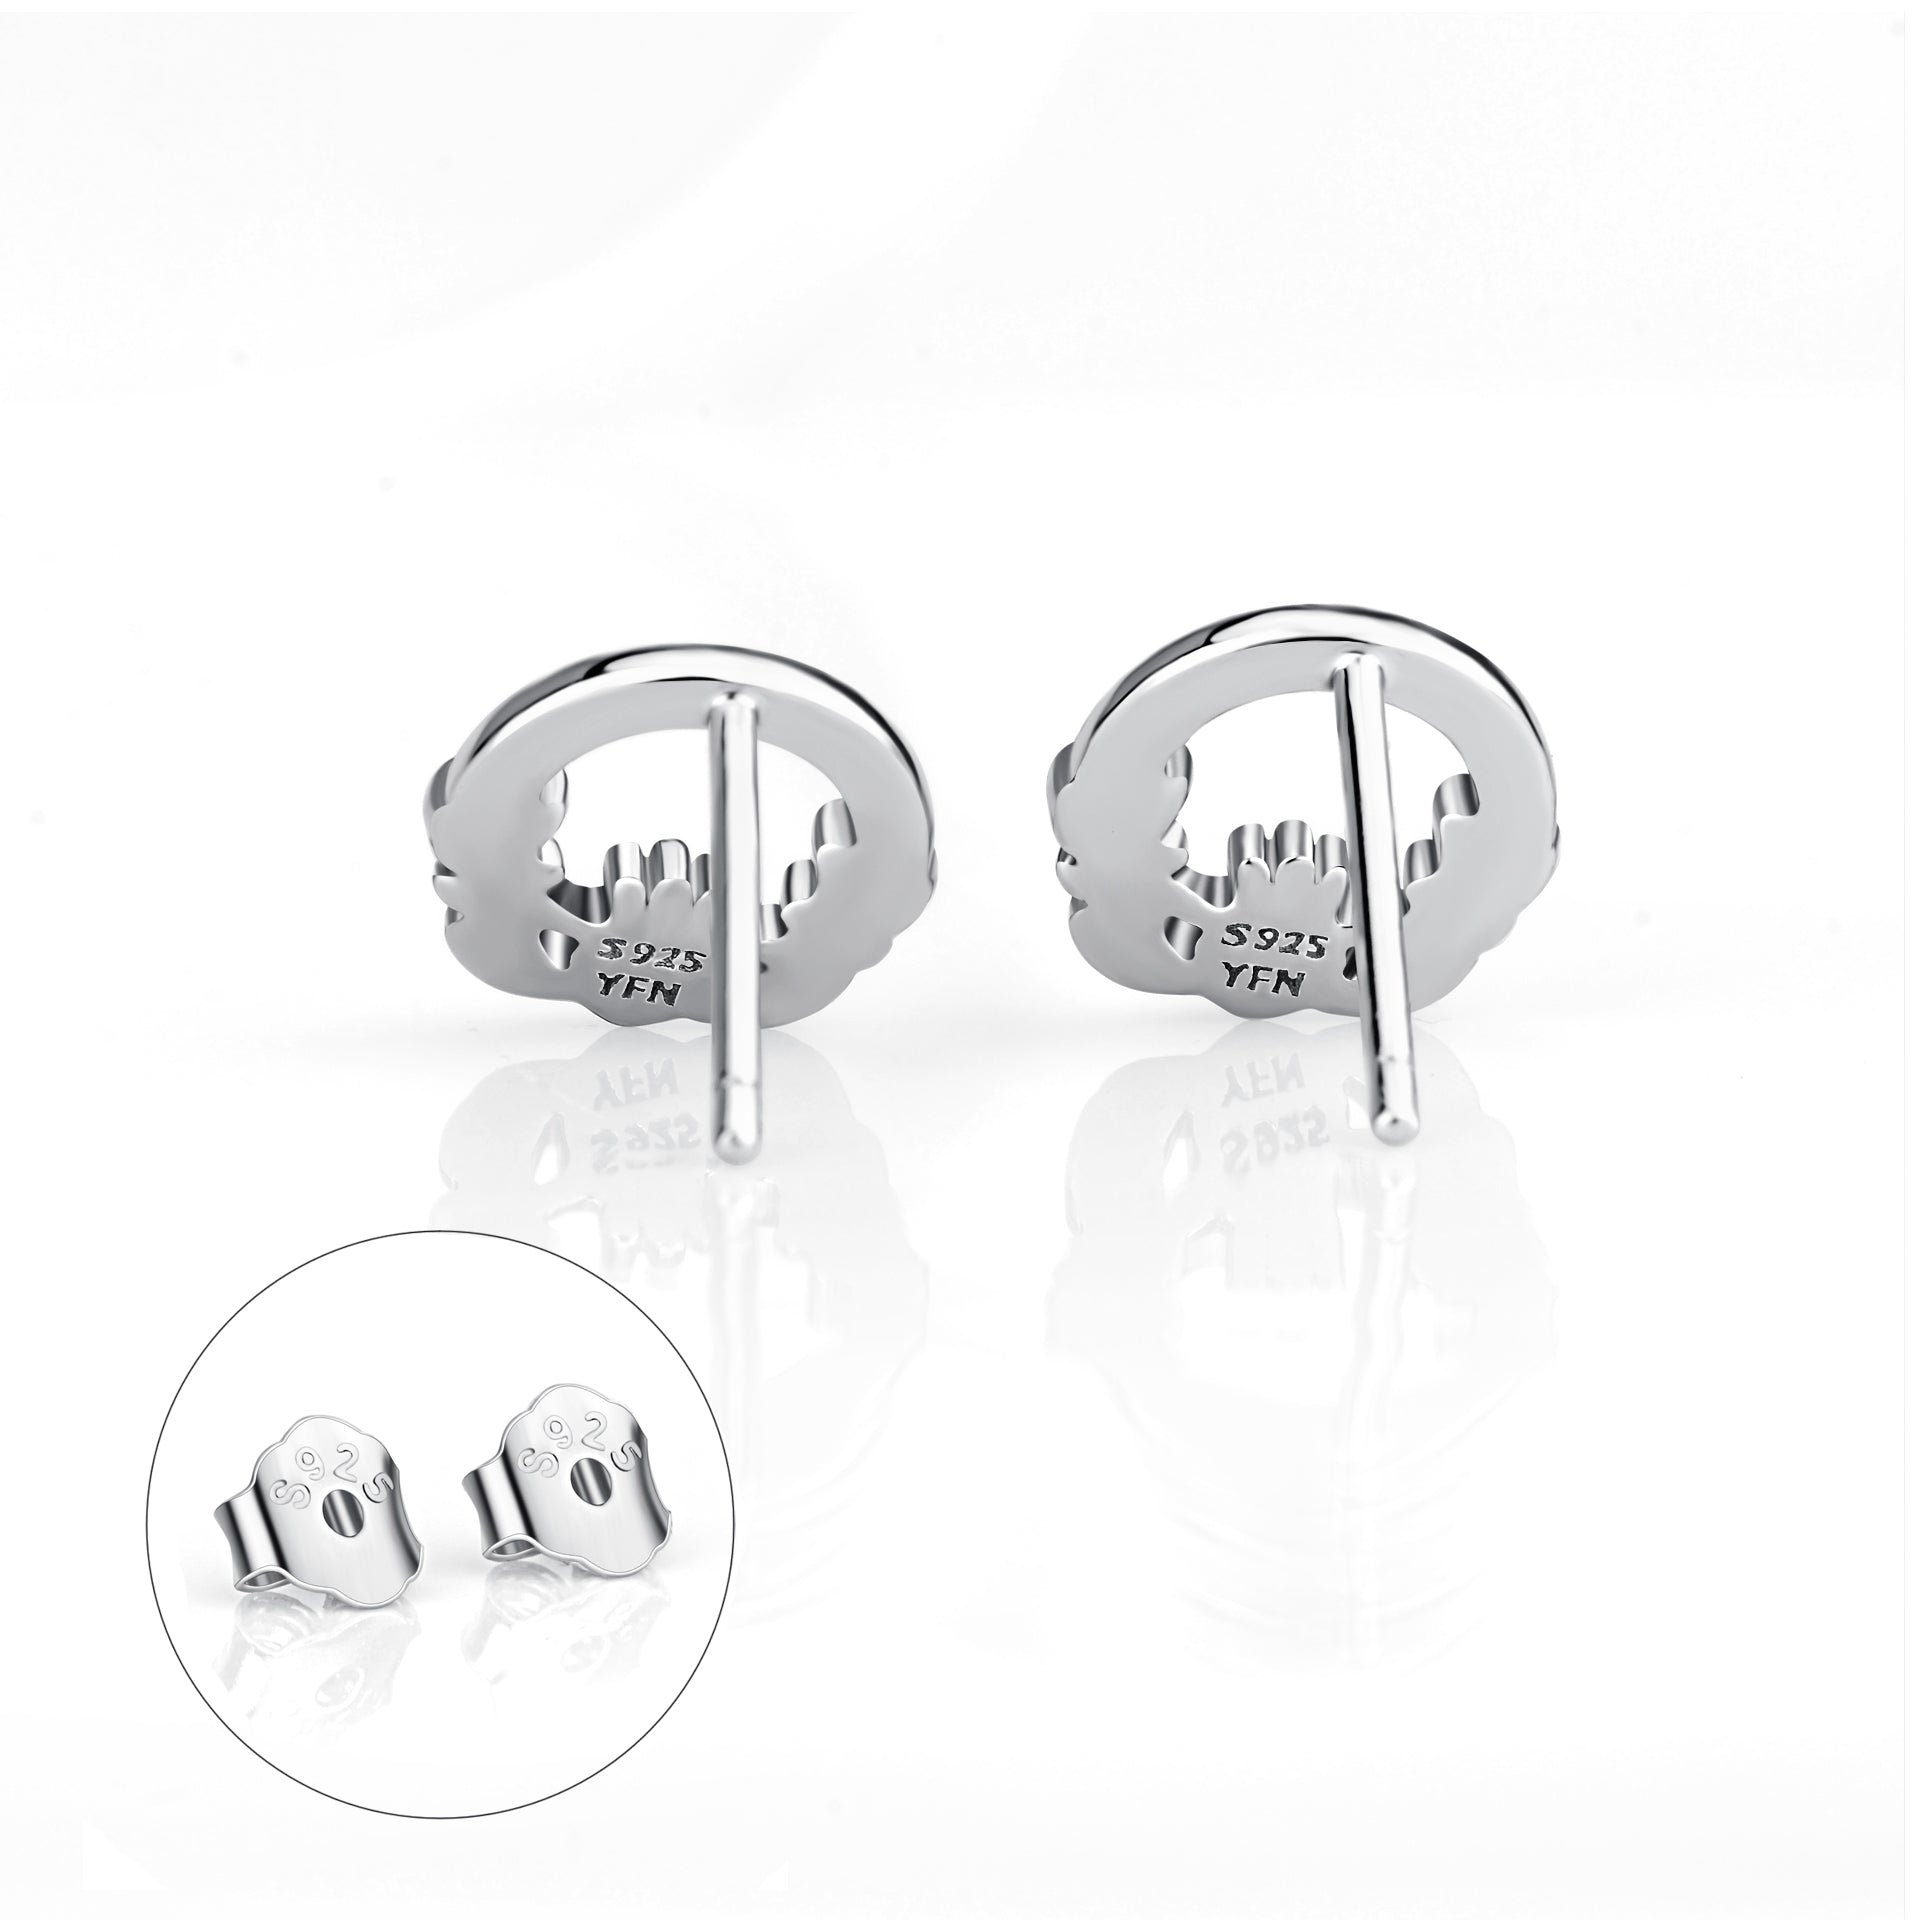 Victory Garland Design Earrings Girl Cute Gift Silver Earring Wholesale